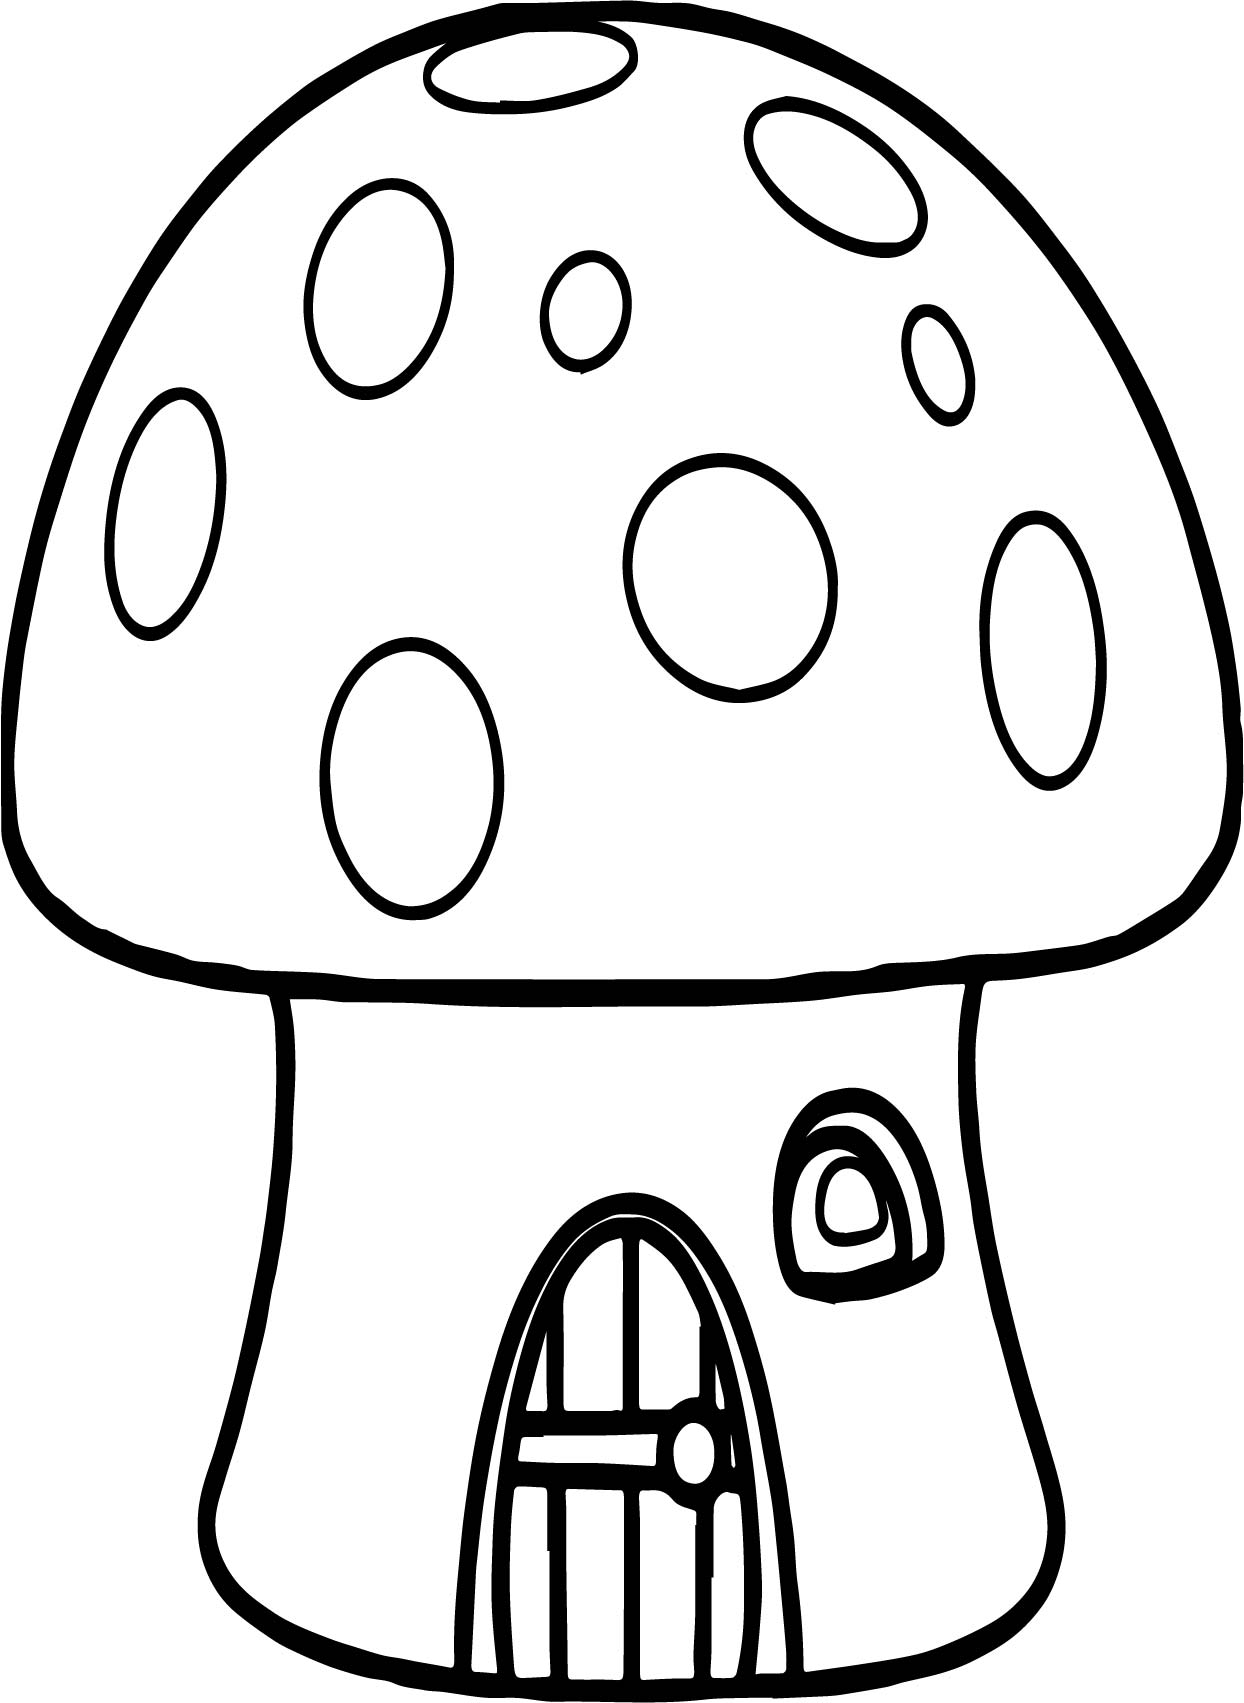 Gingerbread House Coloring Pages | Free download on ClipArtMag